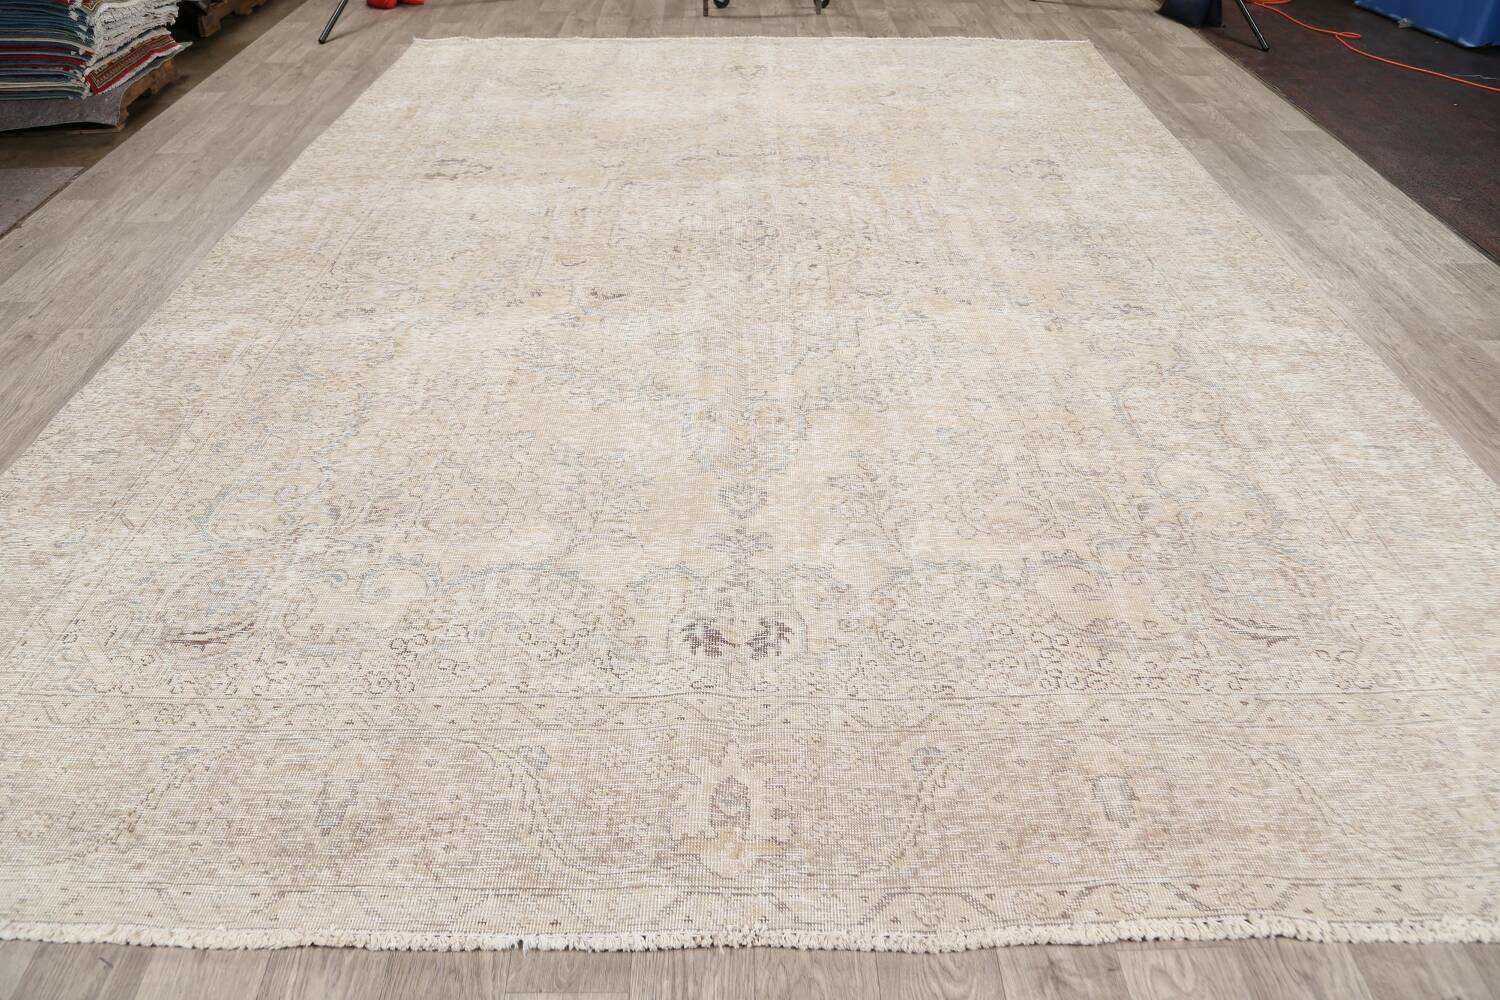 Antique Muted Floral Tabriz Persian Area Rug 9x13 image 15